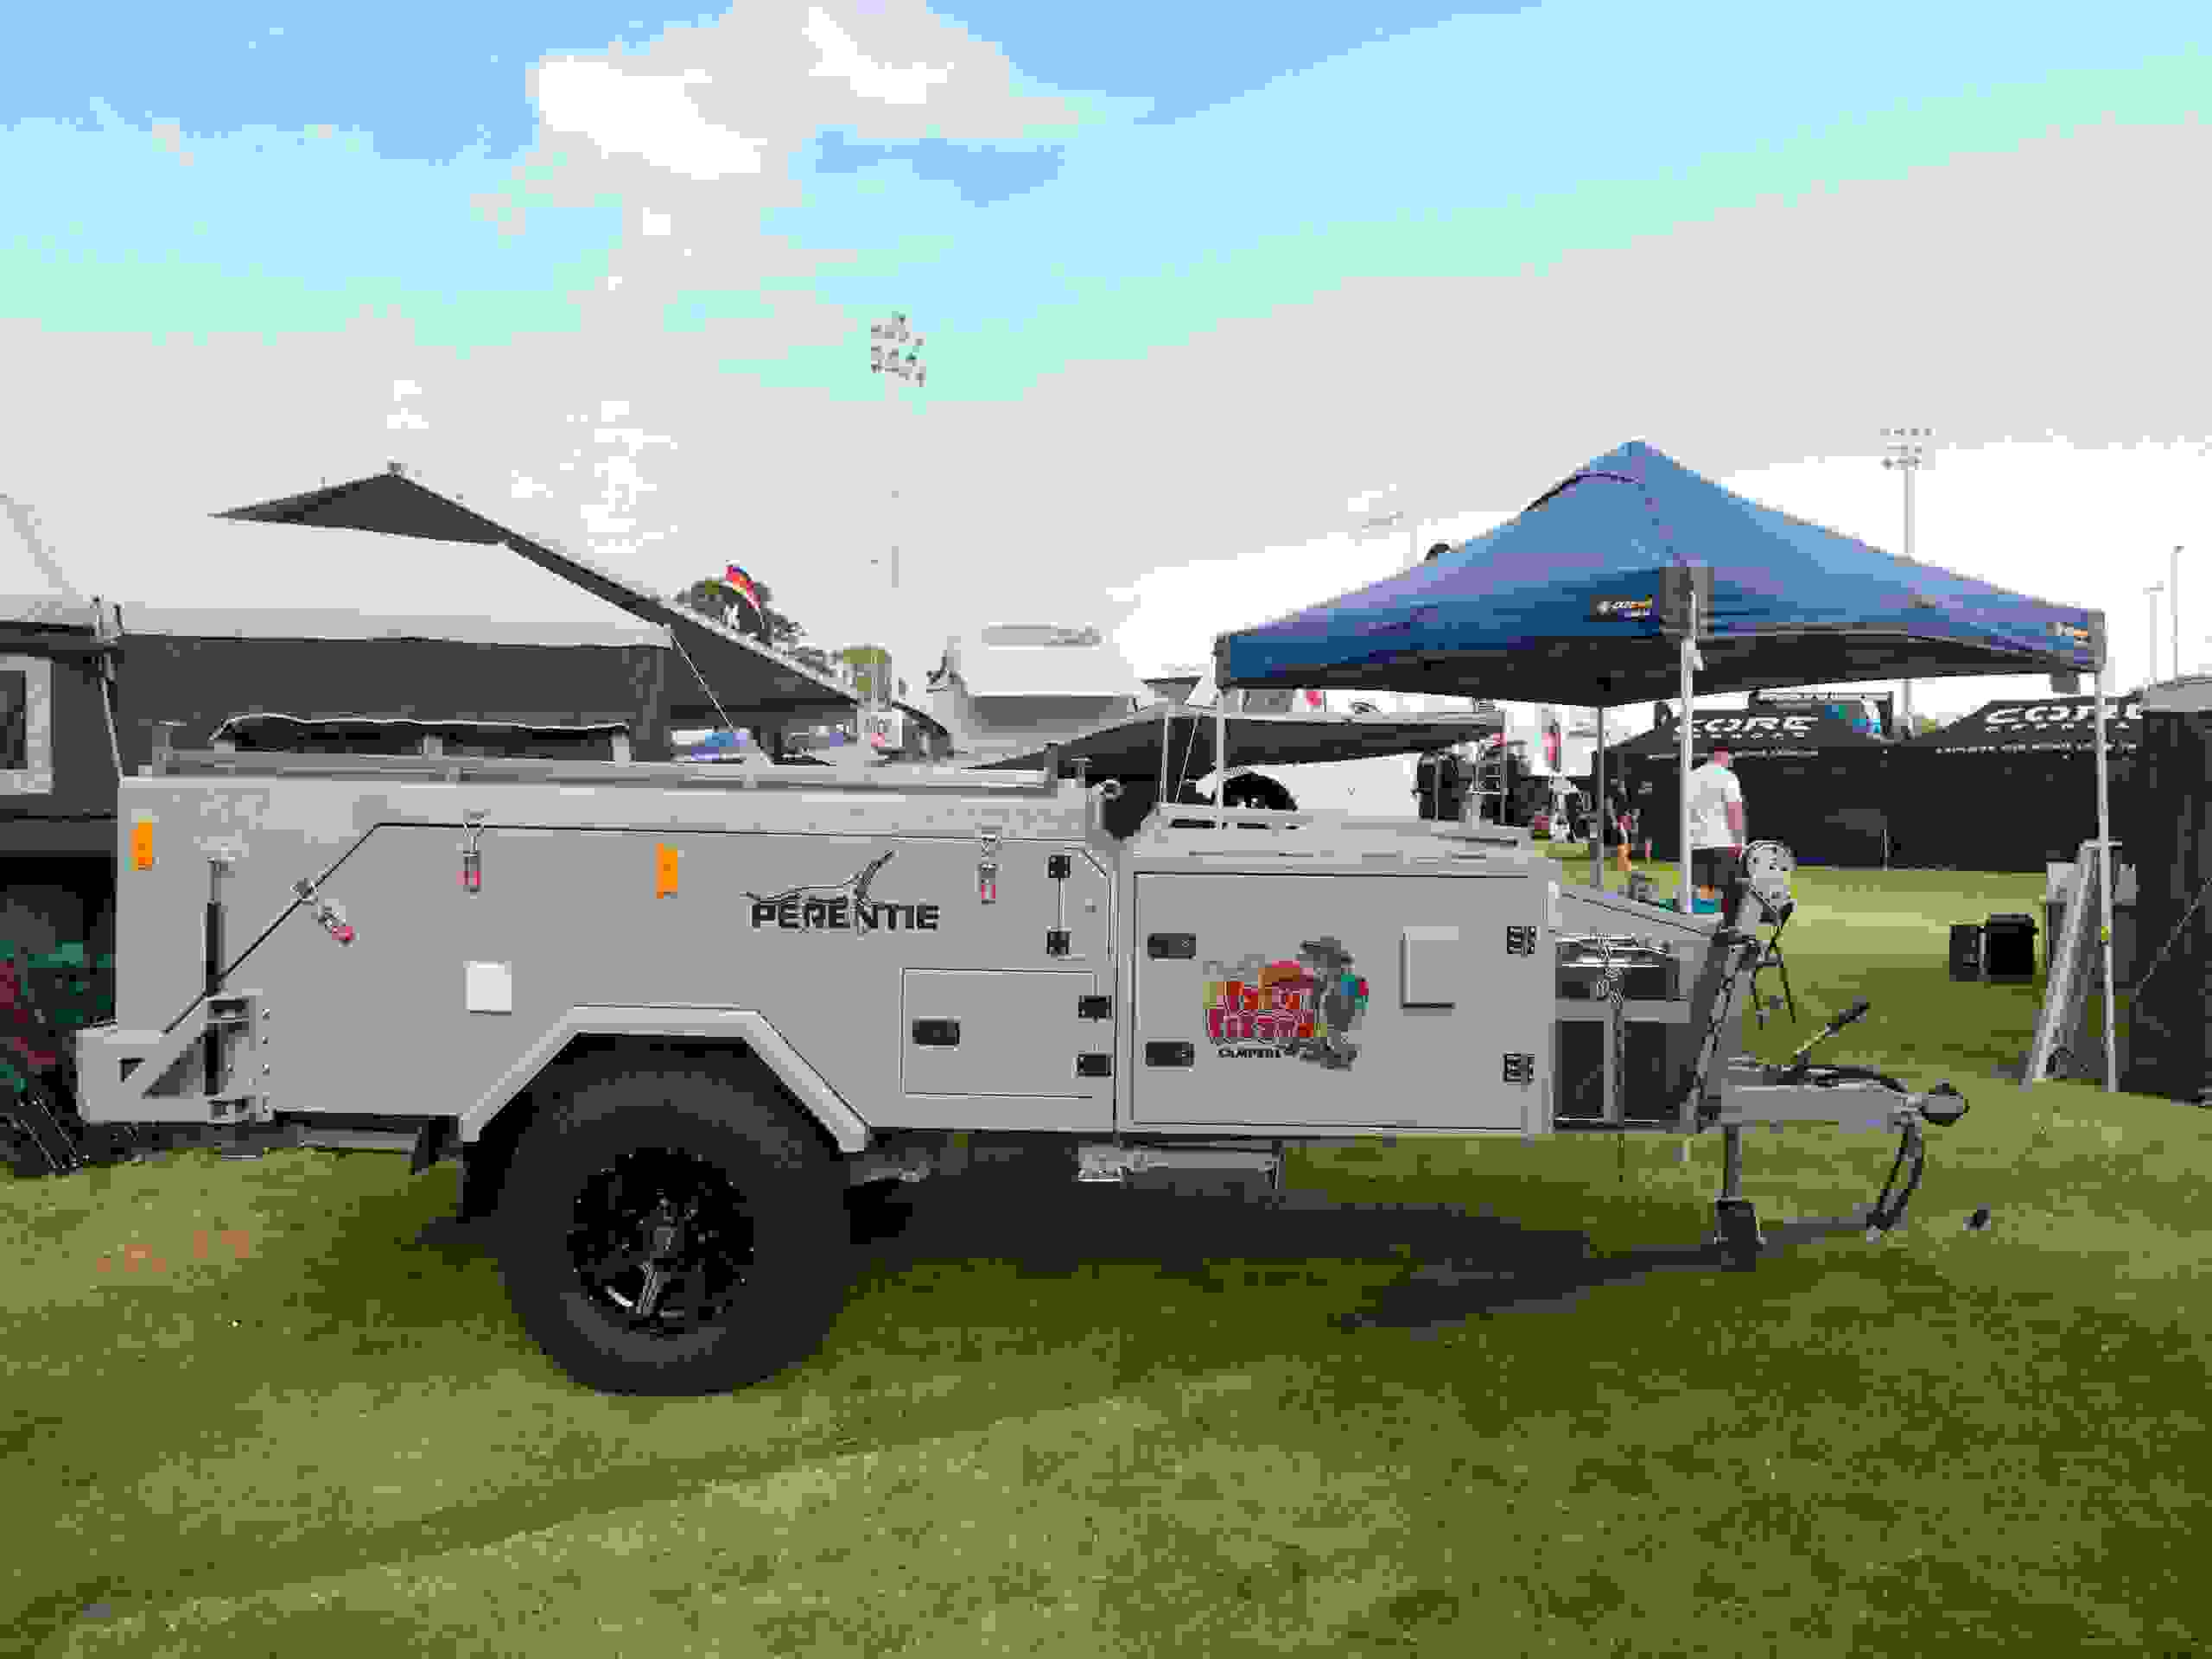 The Perentie camper trailer at te Mandurah show.